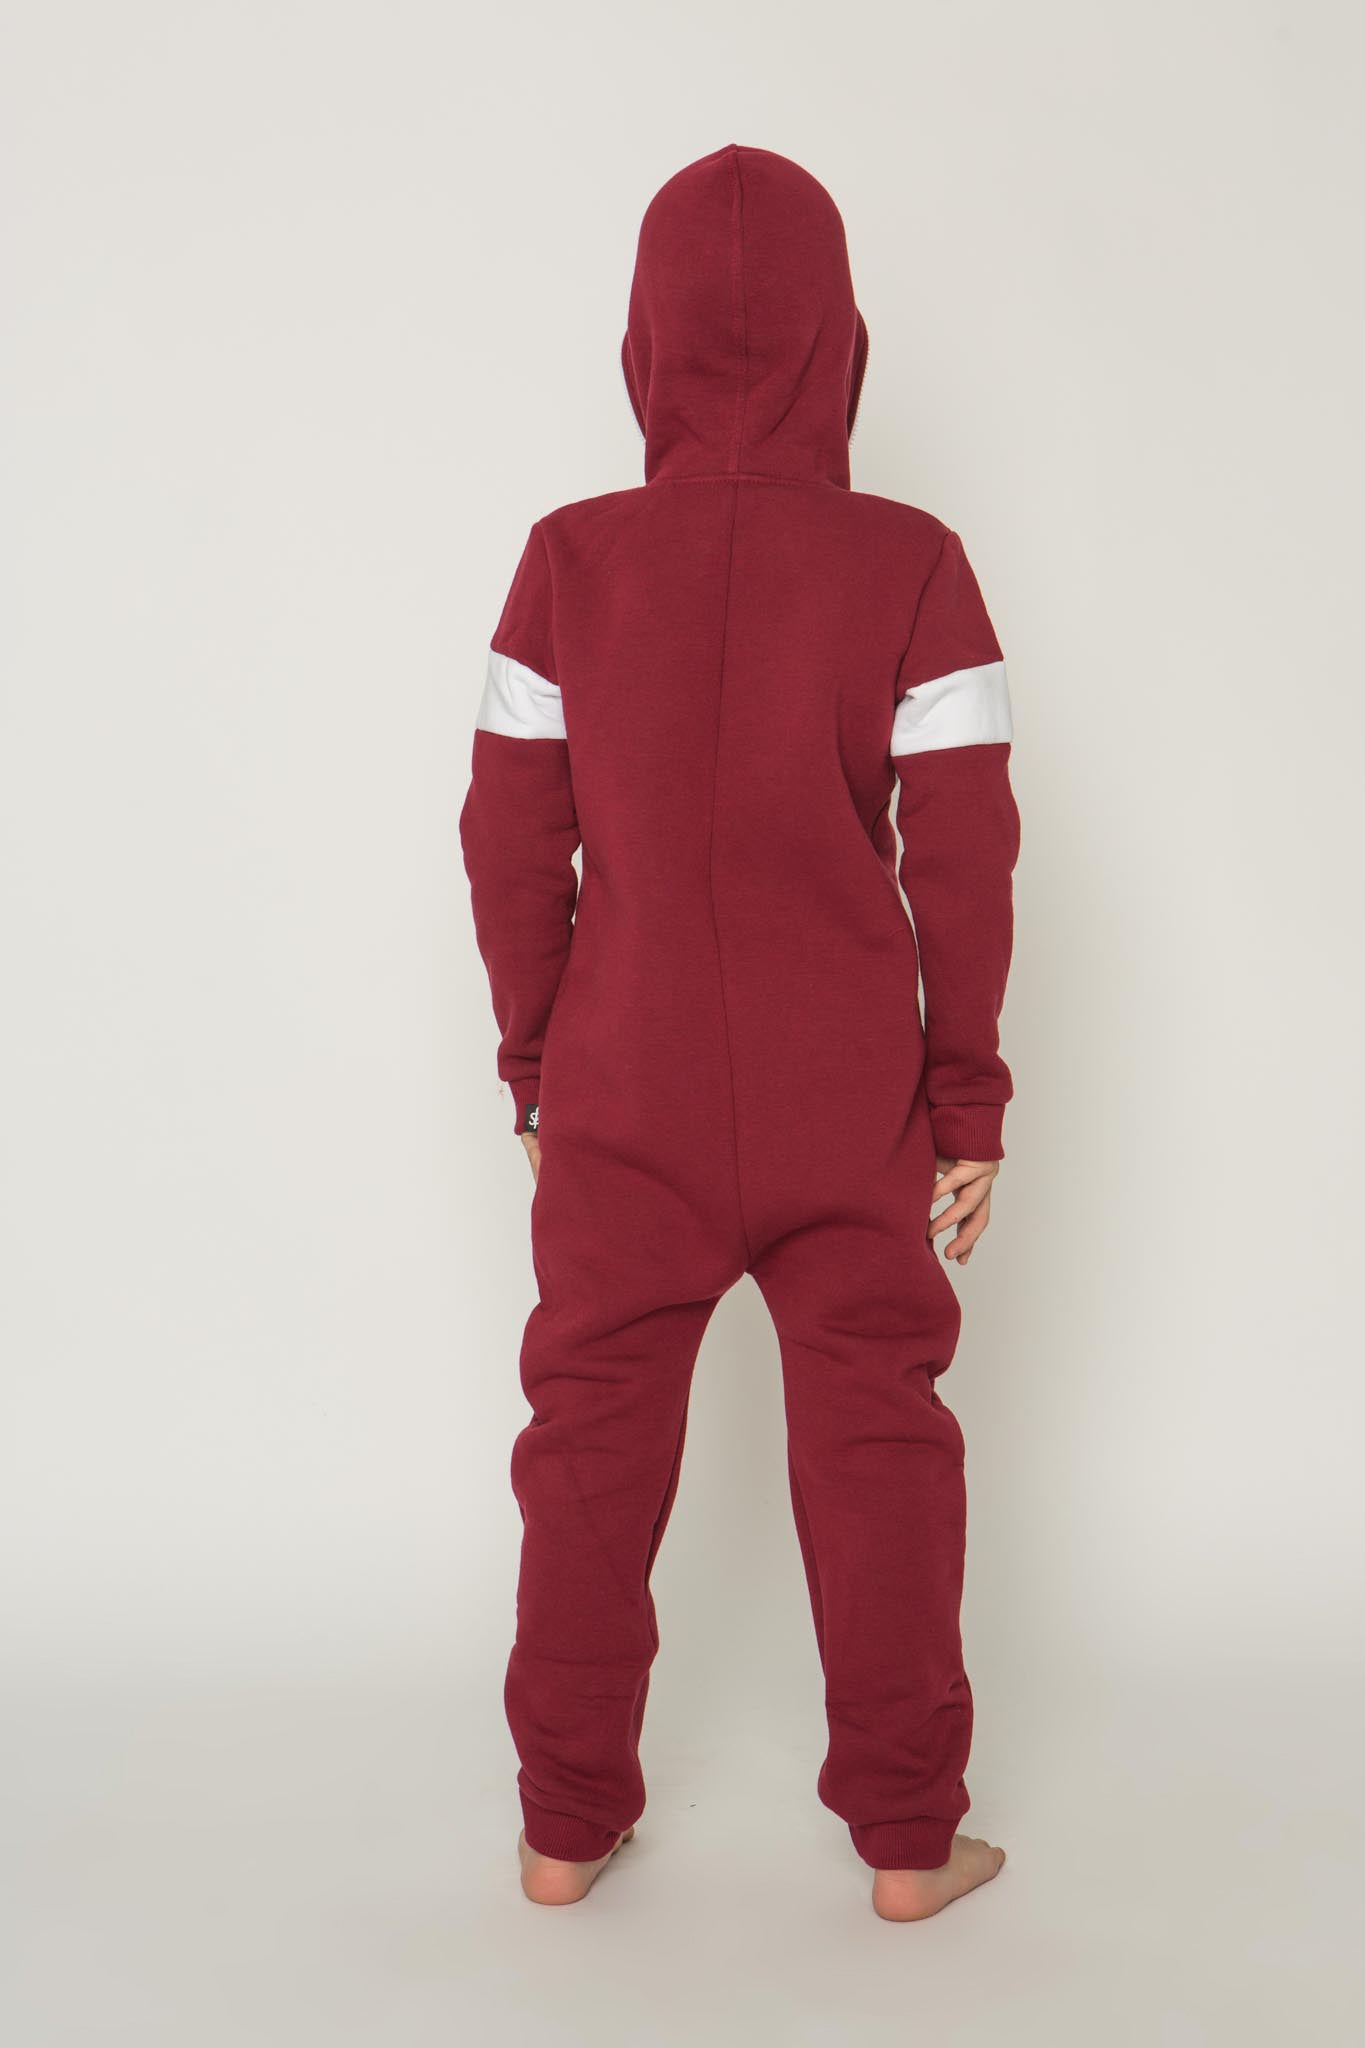 Sofa Killer burgundy unisex kids onesie Riga